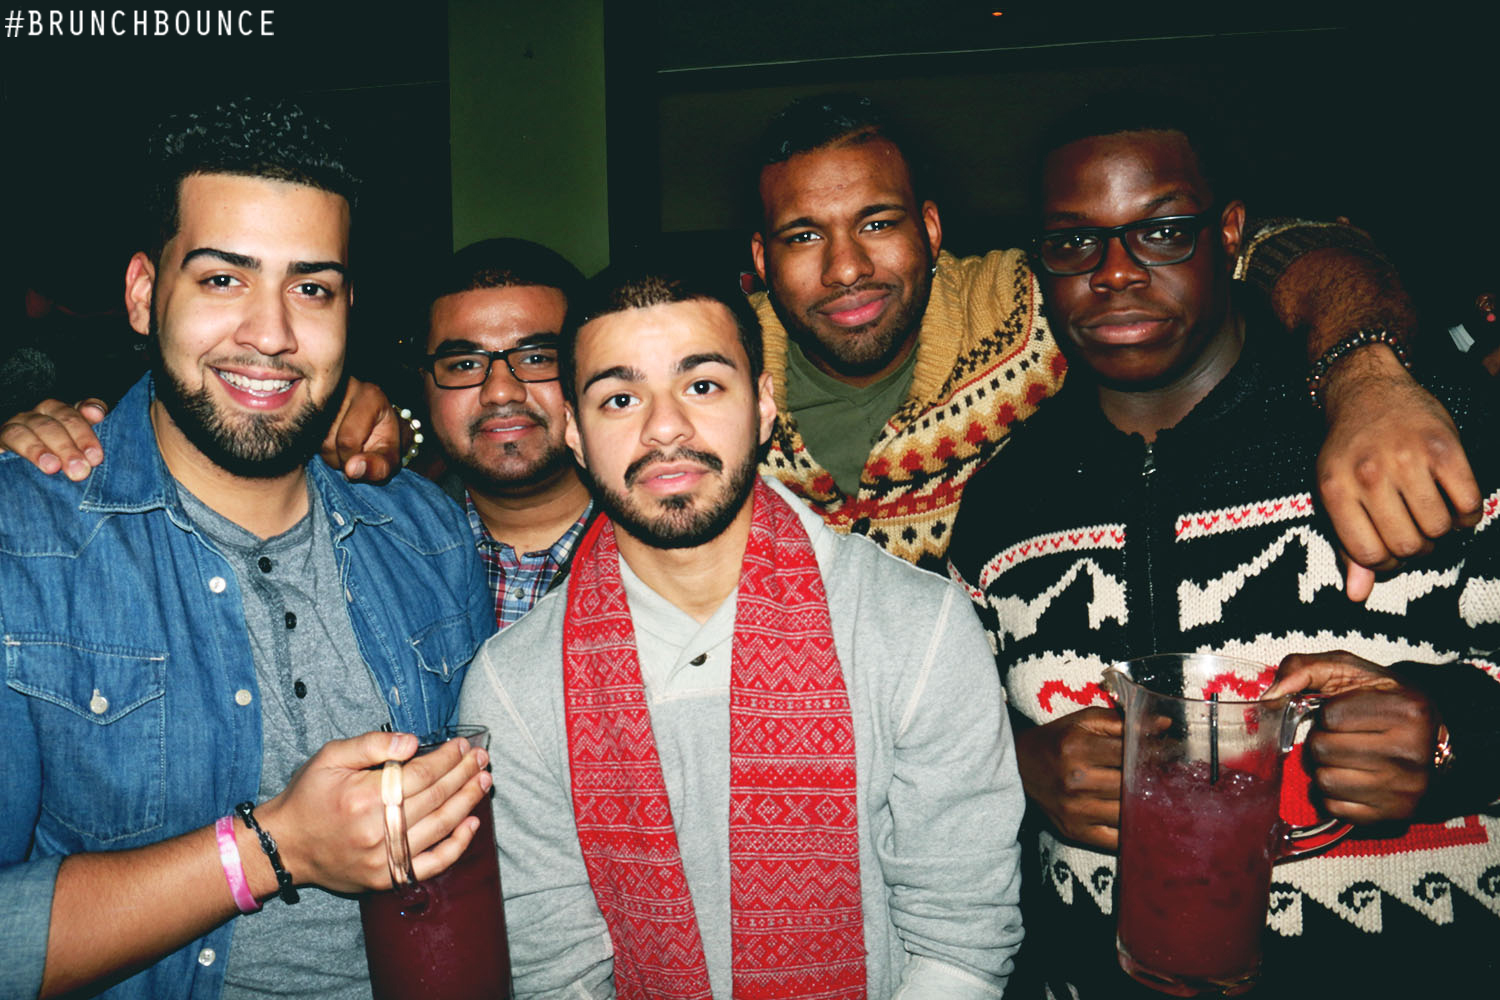 brunchbounce-ugly-christmas-sweater-party-122014_15460402904_o.jpg